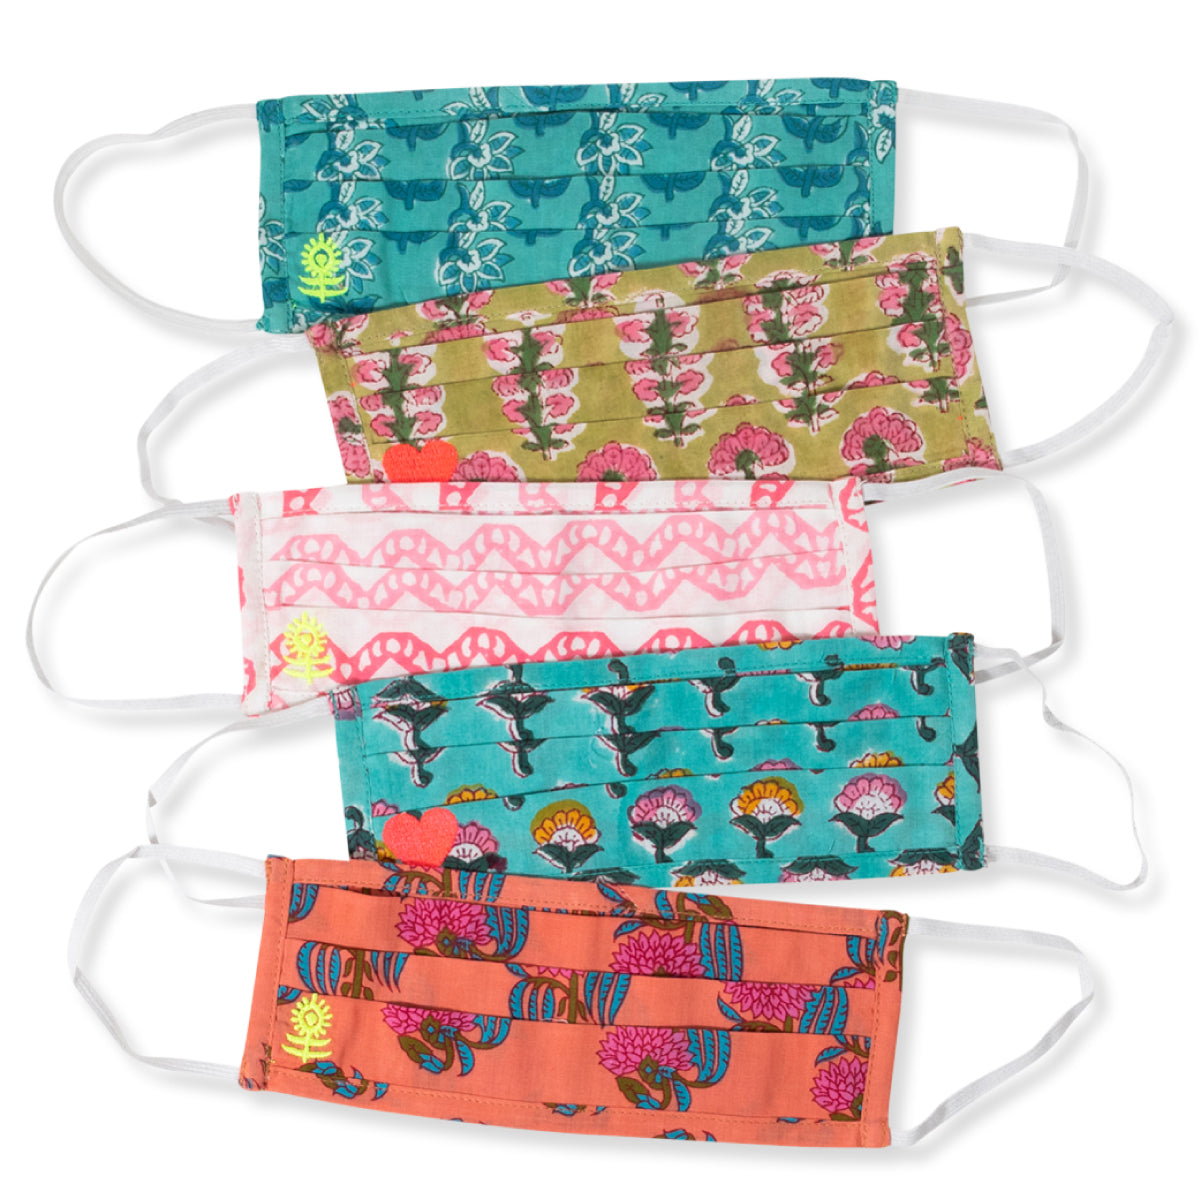 Blockprint Embroidered Facemasks S/5 - Charming and Chic